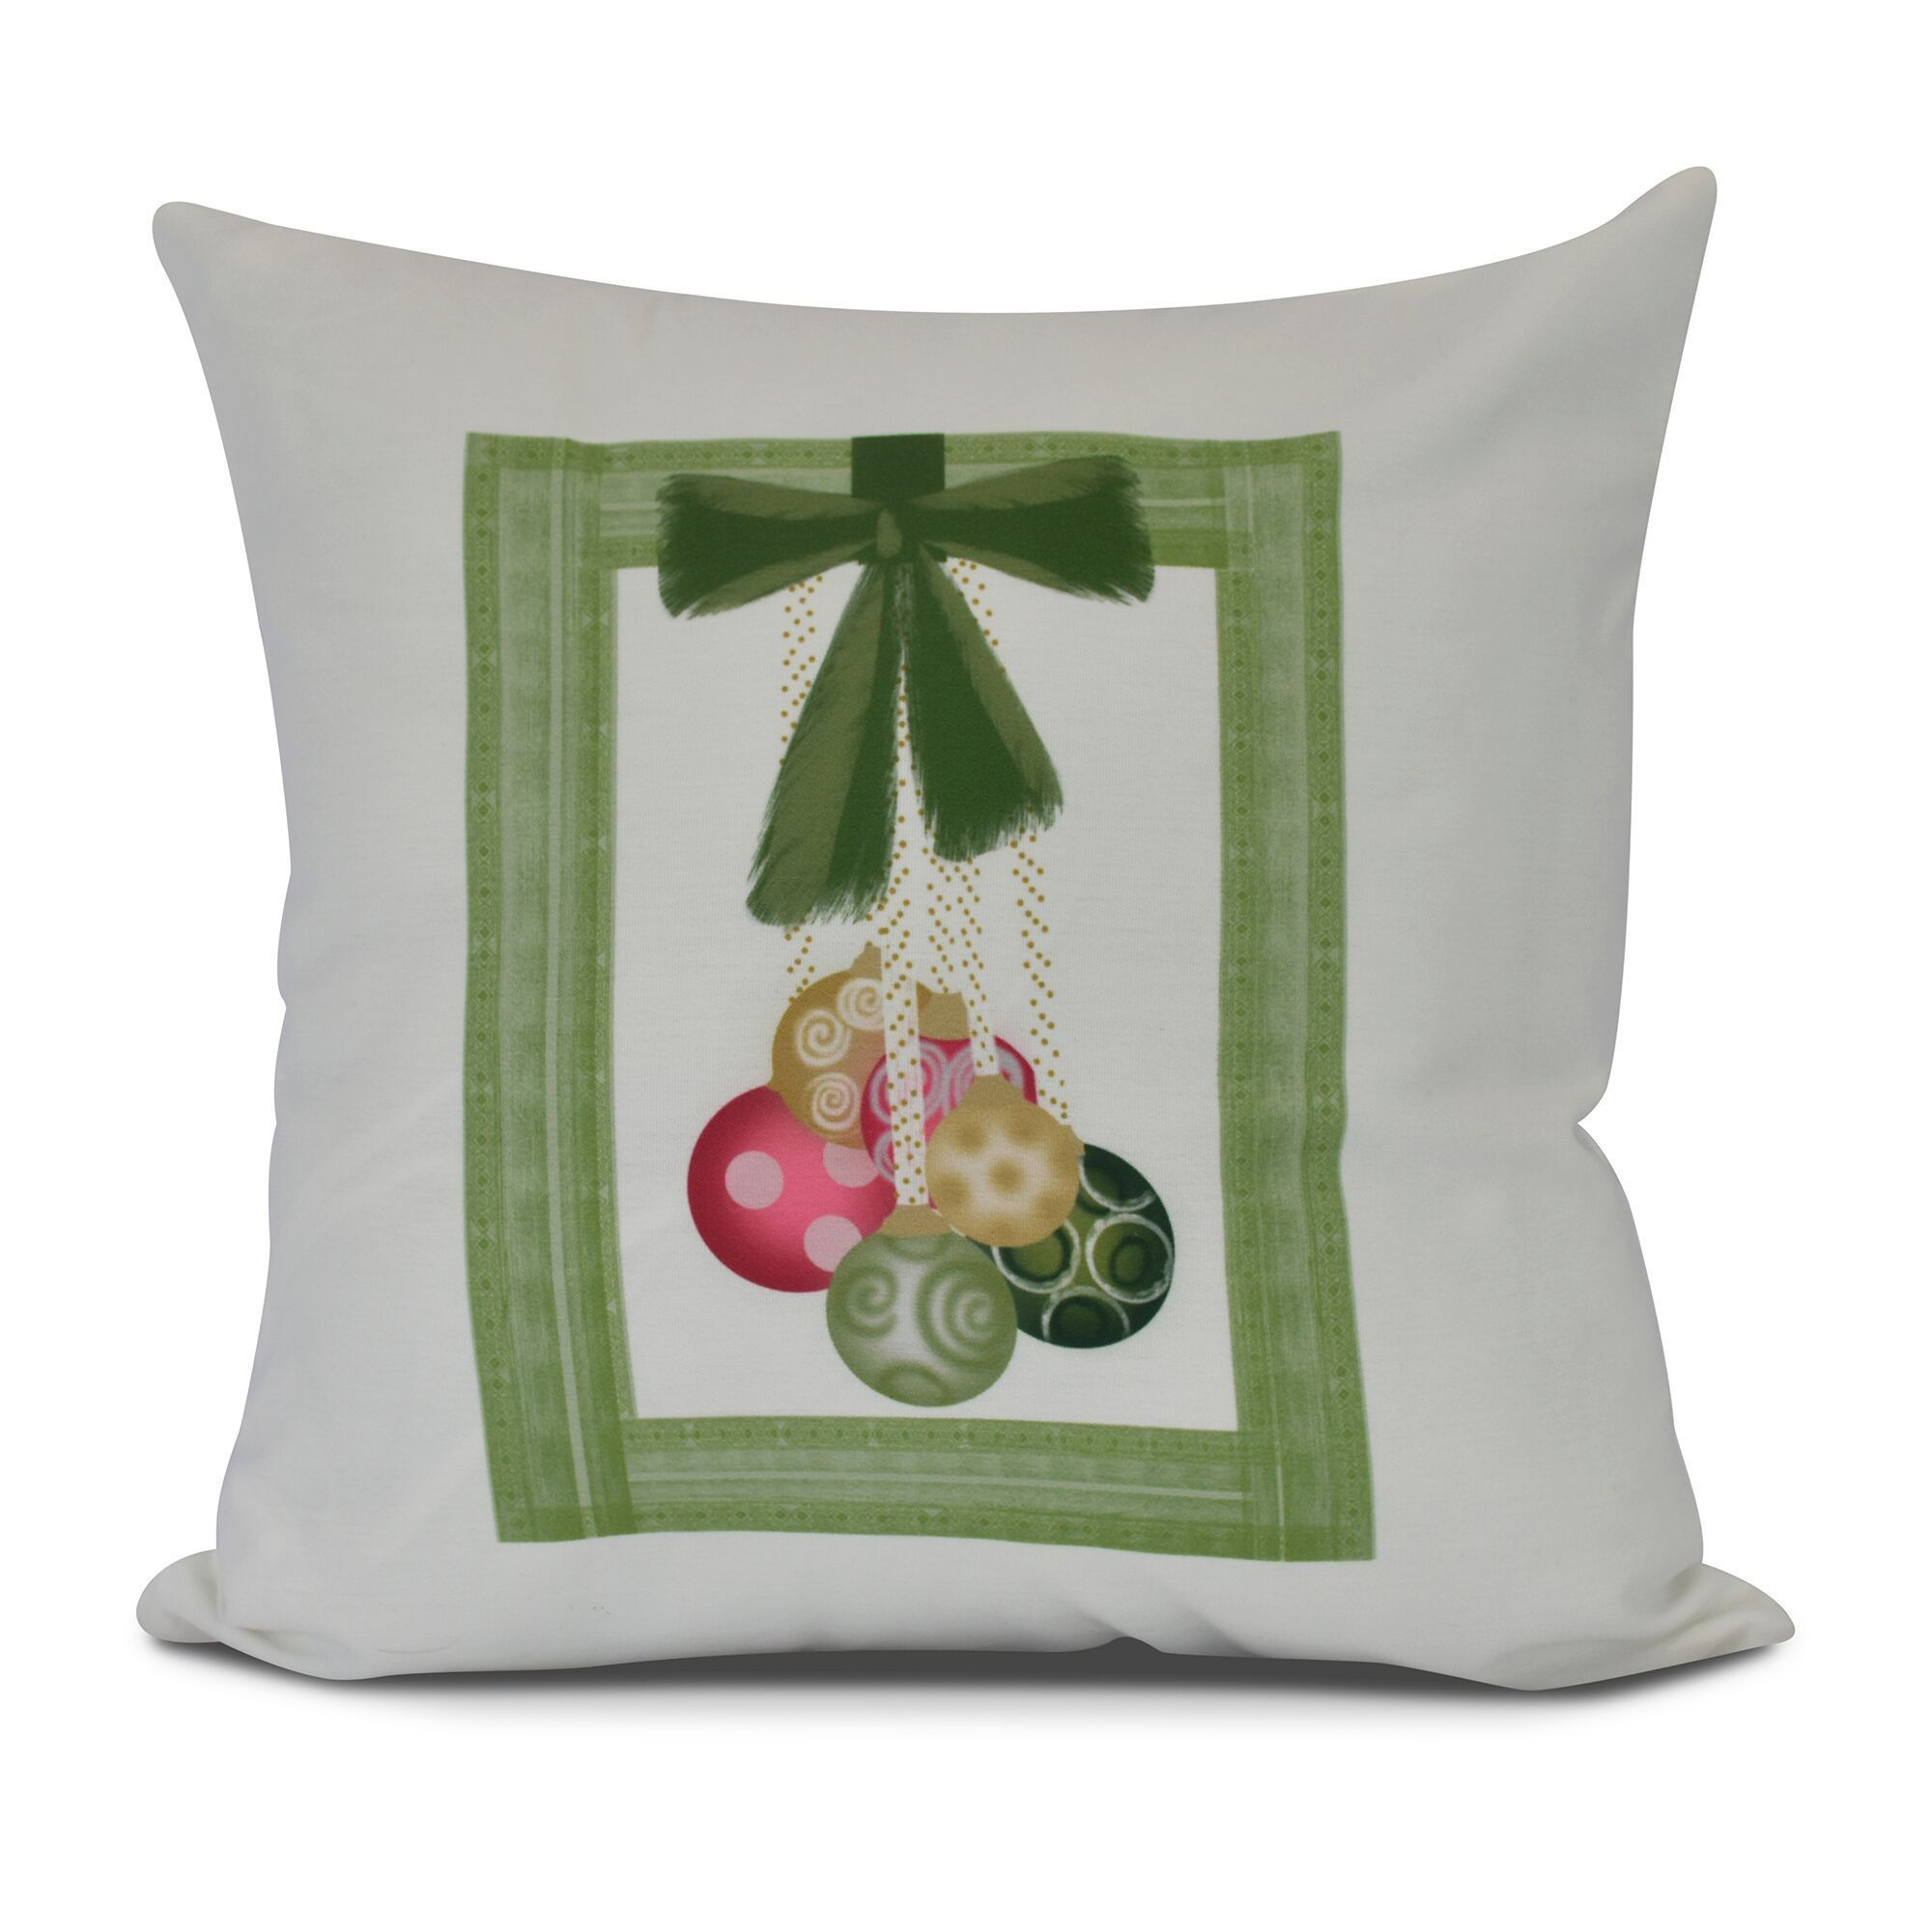 E by design frame it up geometric print outdoor pillow green